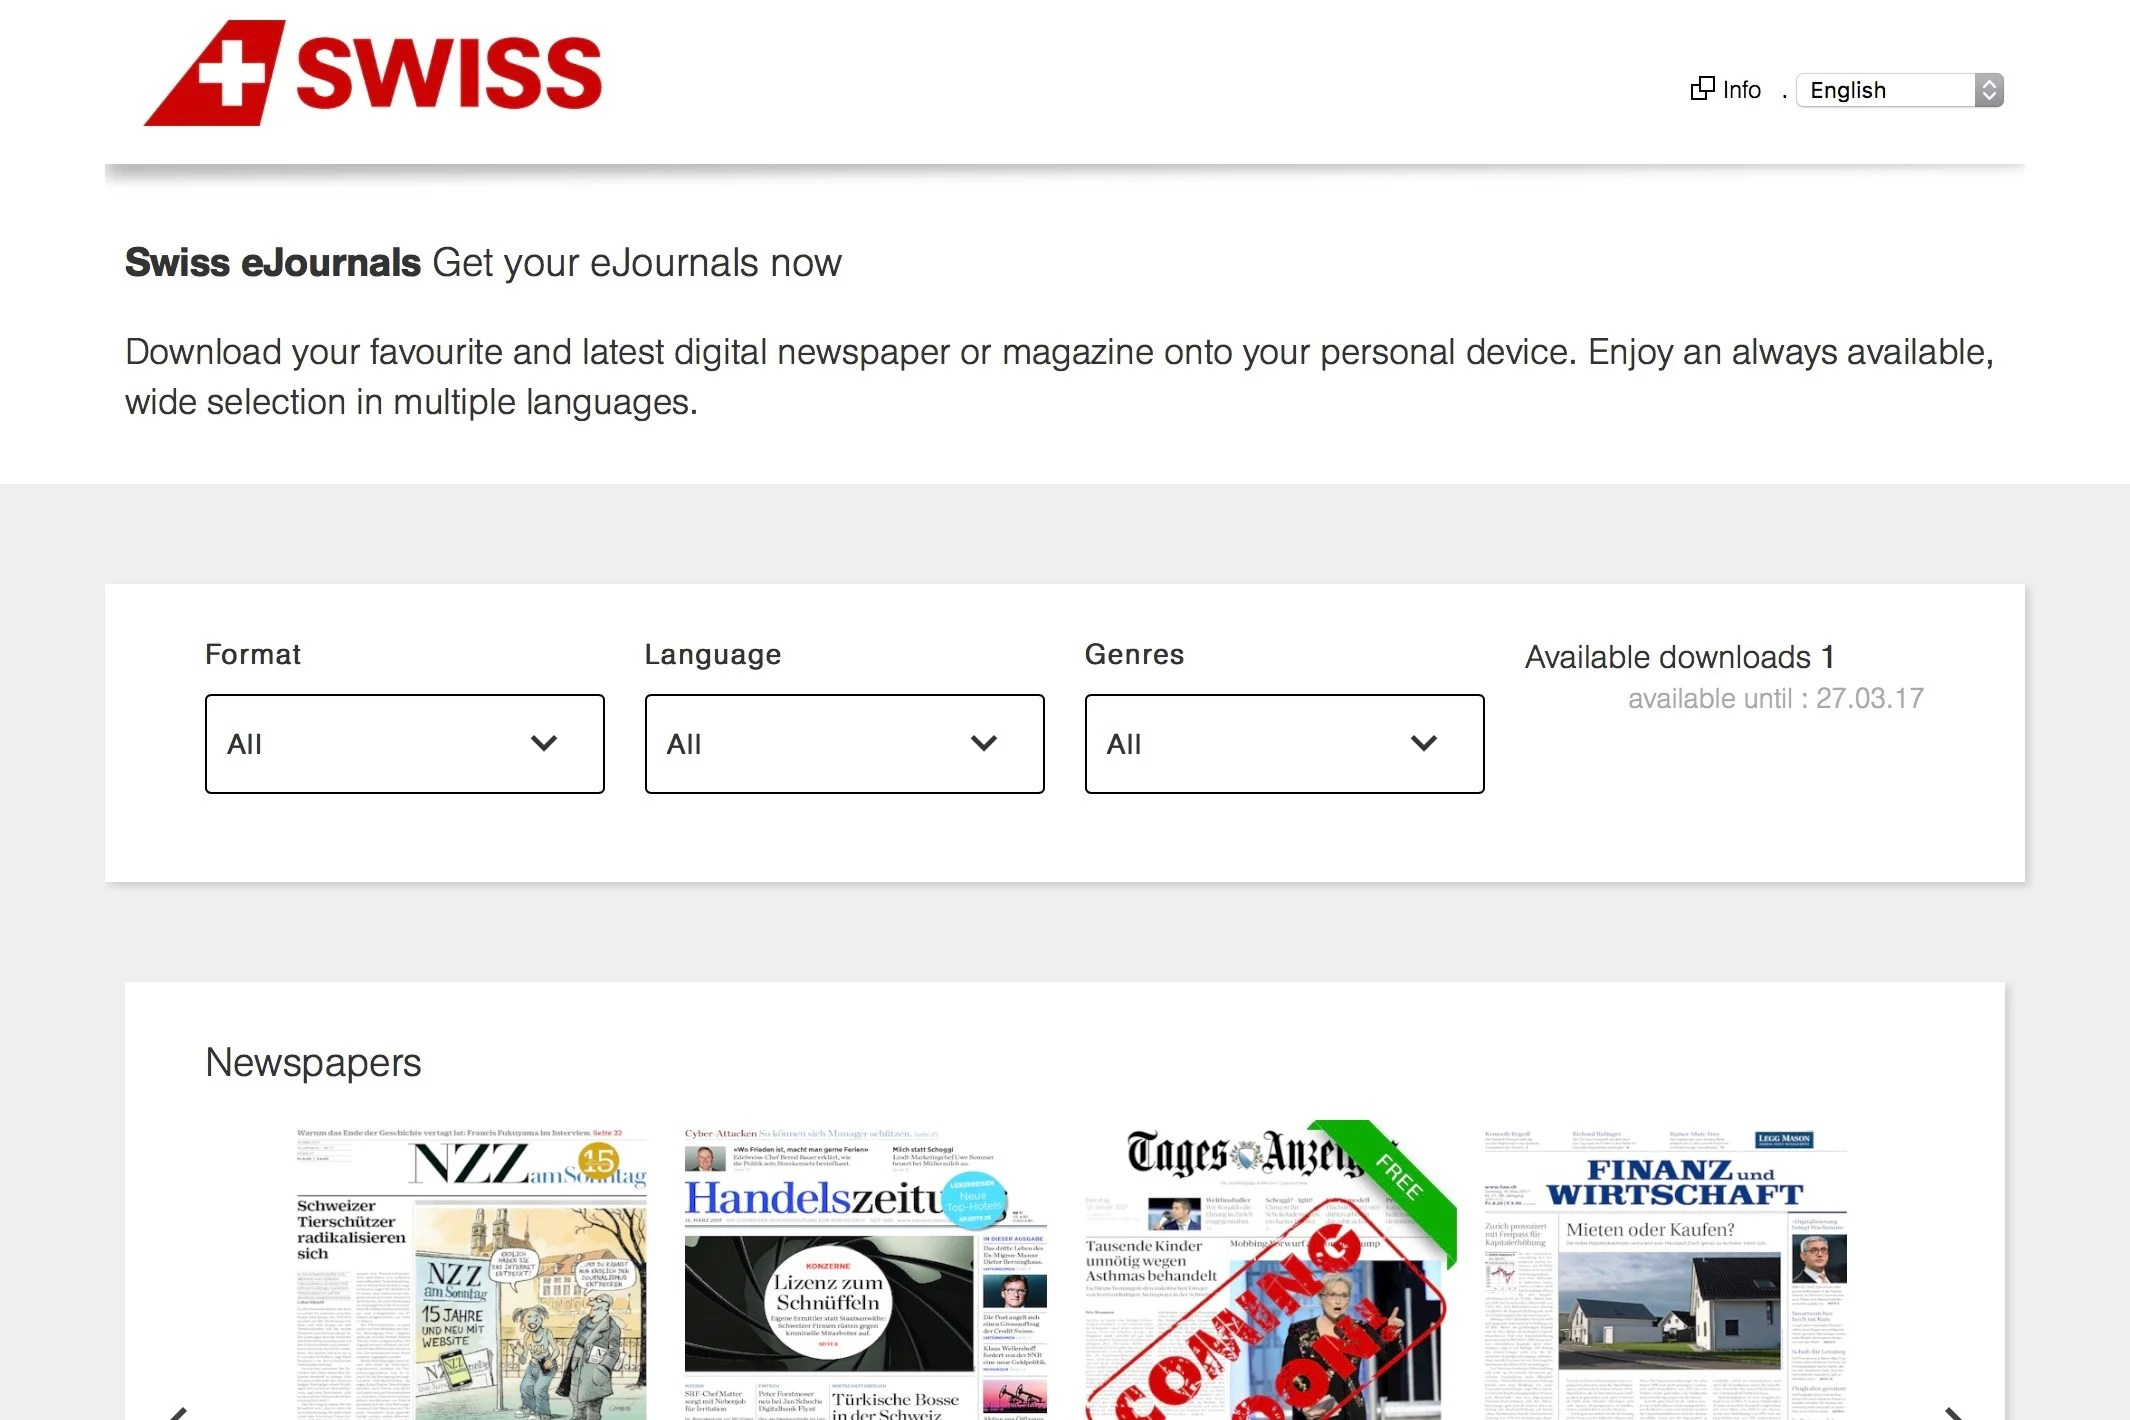 Miles And More Schweiz Flight Review Swiss A340 300 Economy Zurich To Boston